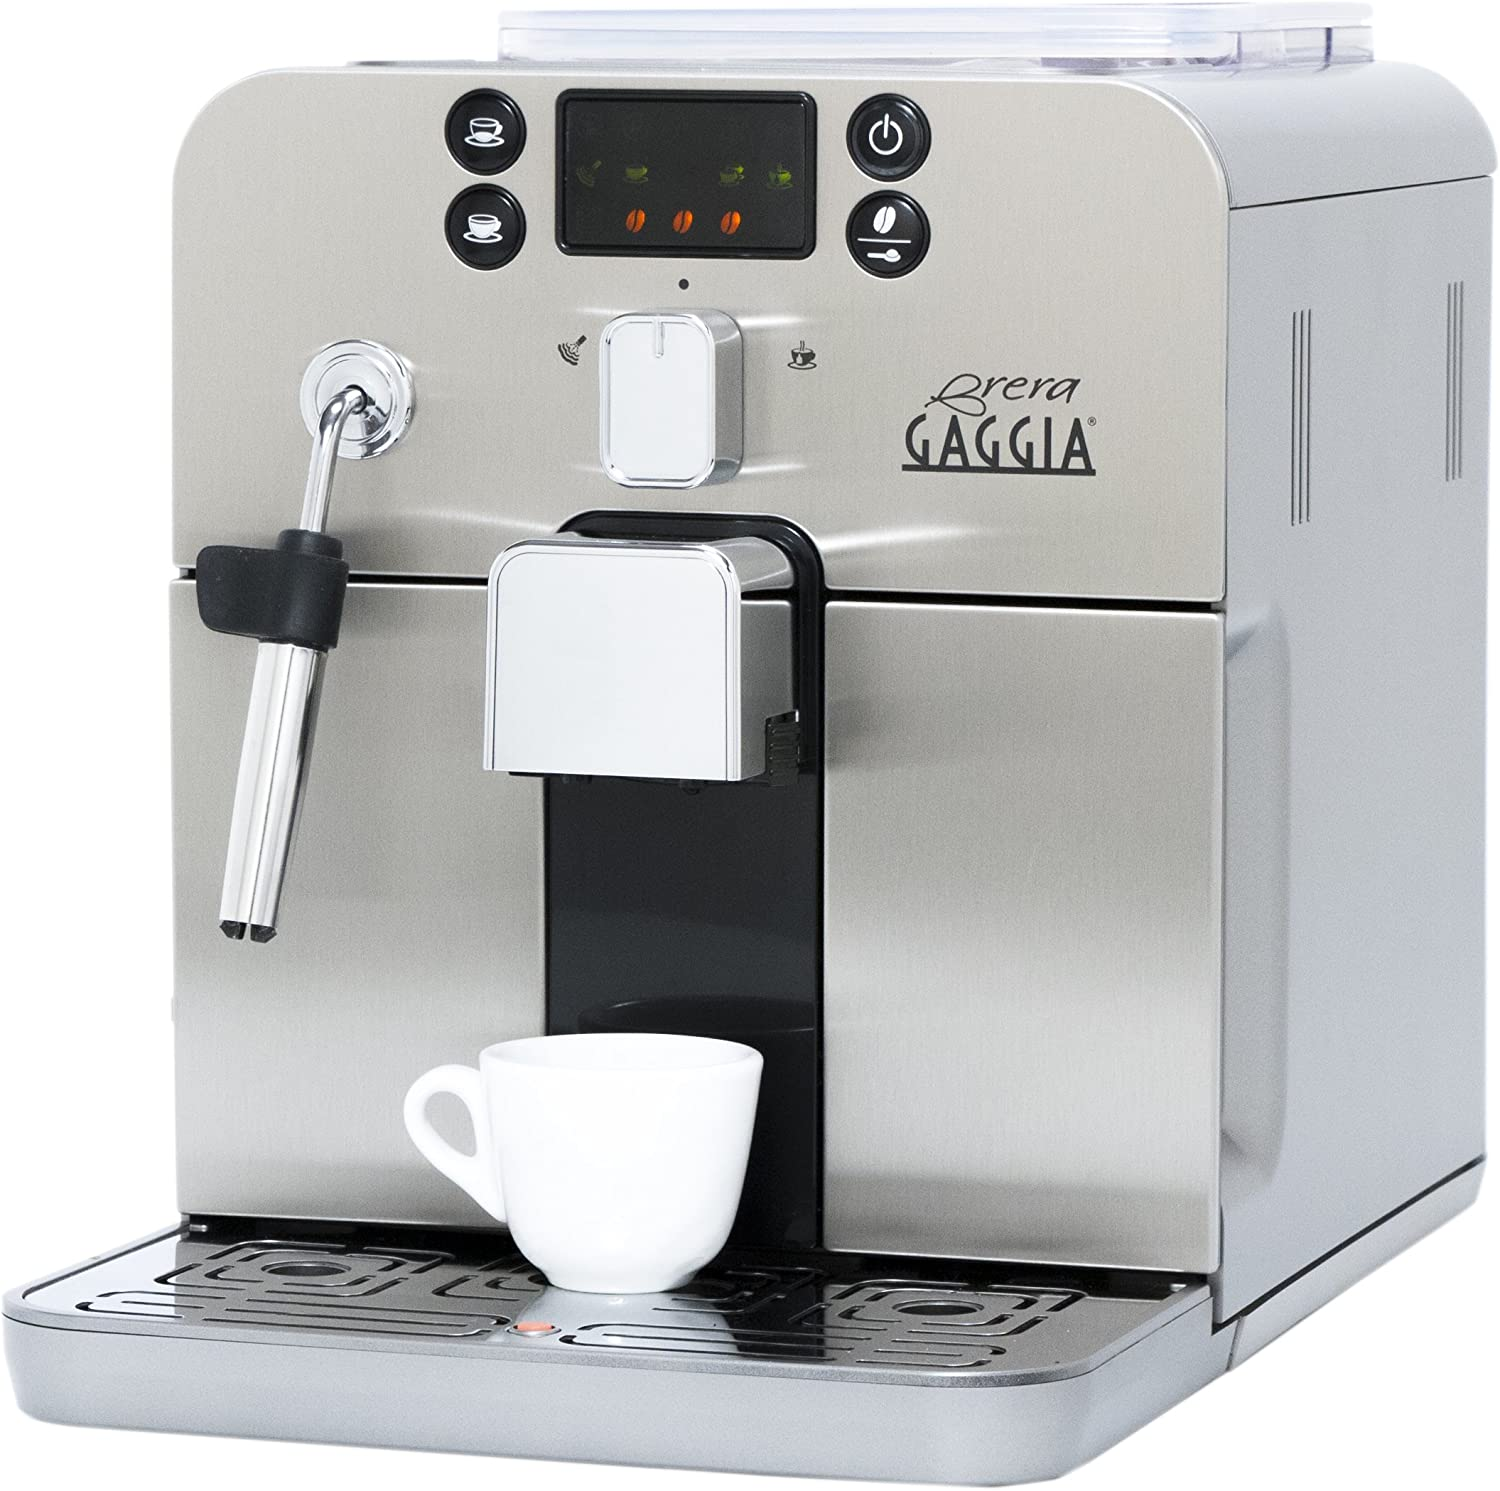 Gaggia Brera Super Automatic Espresso Machine in Silver. Pannarello Wand Frothing for Latte and Cappuccino Drinks. Espresso from Pre-Ground or Whole Bean Coffee.